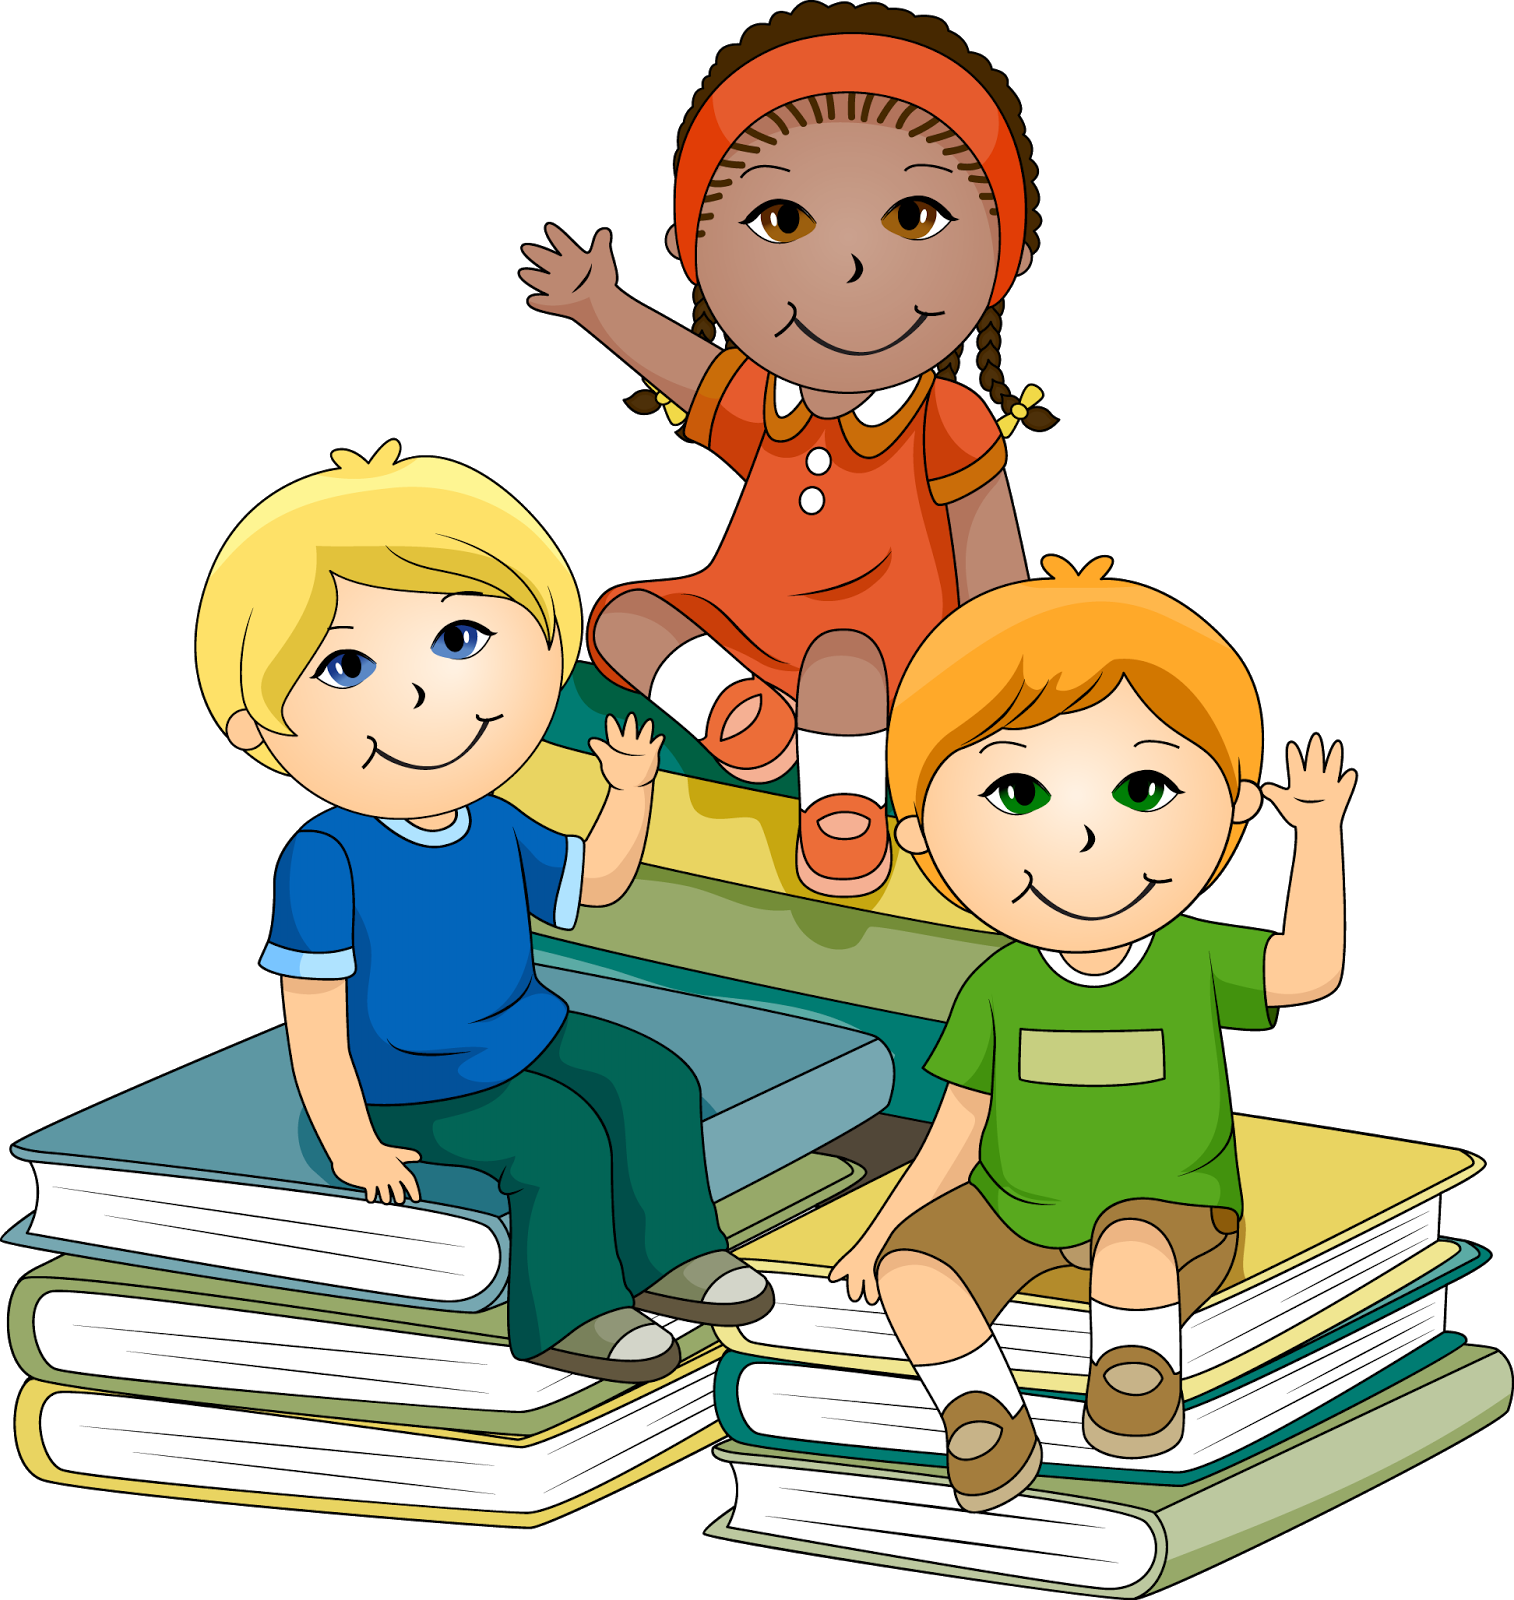 Kids Learning Clipart Image Group (84+) image transparent download